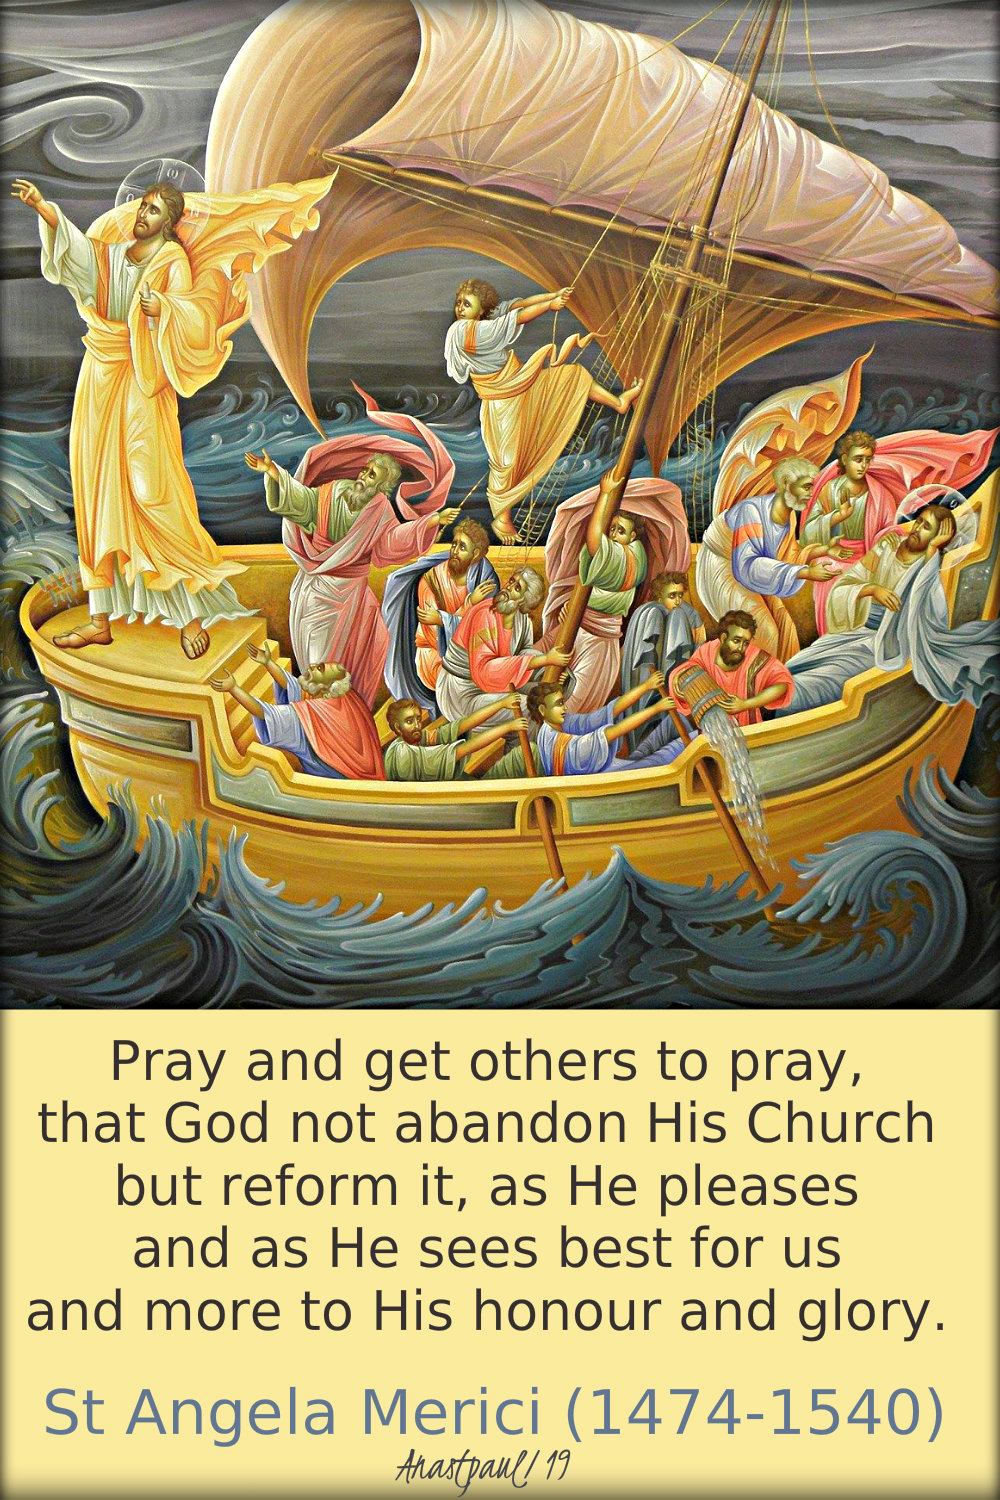 pray and get others to pray - st angela merici 27 jan 2019.jpg